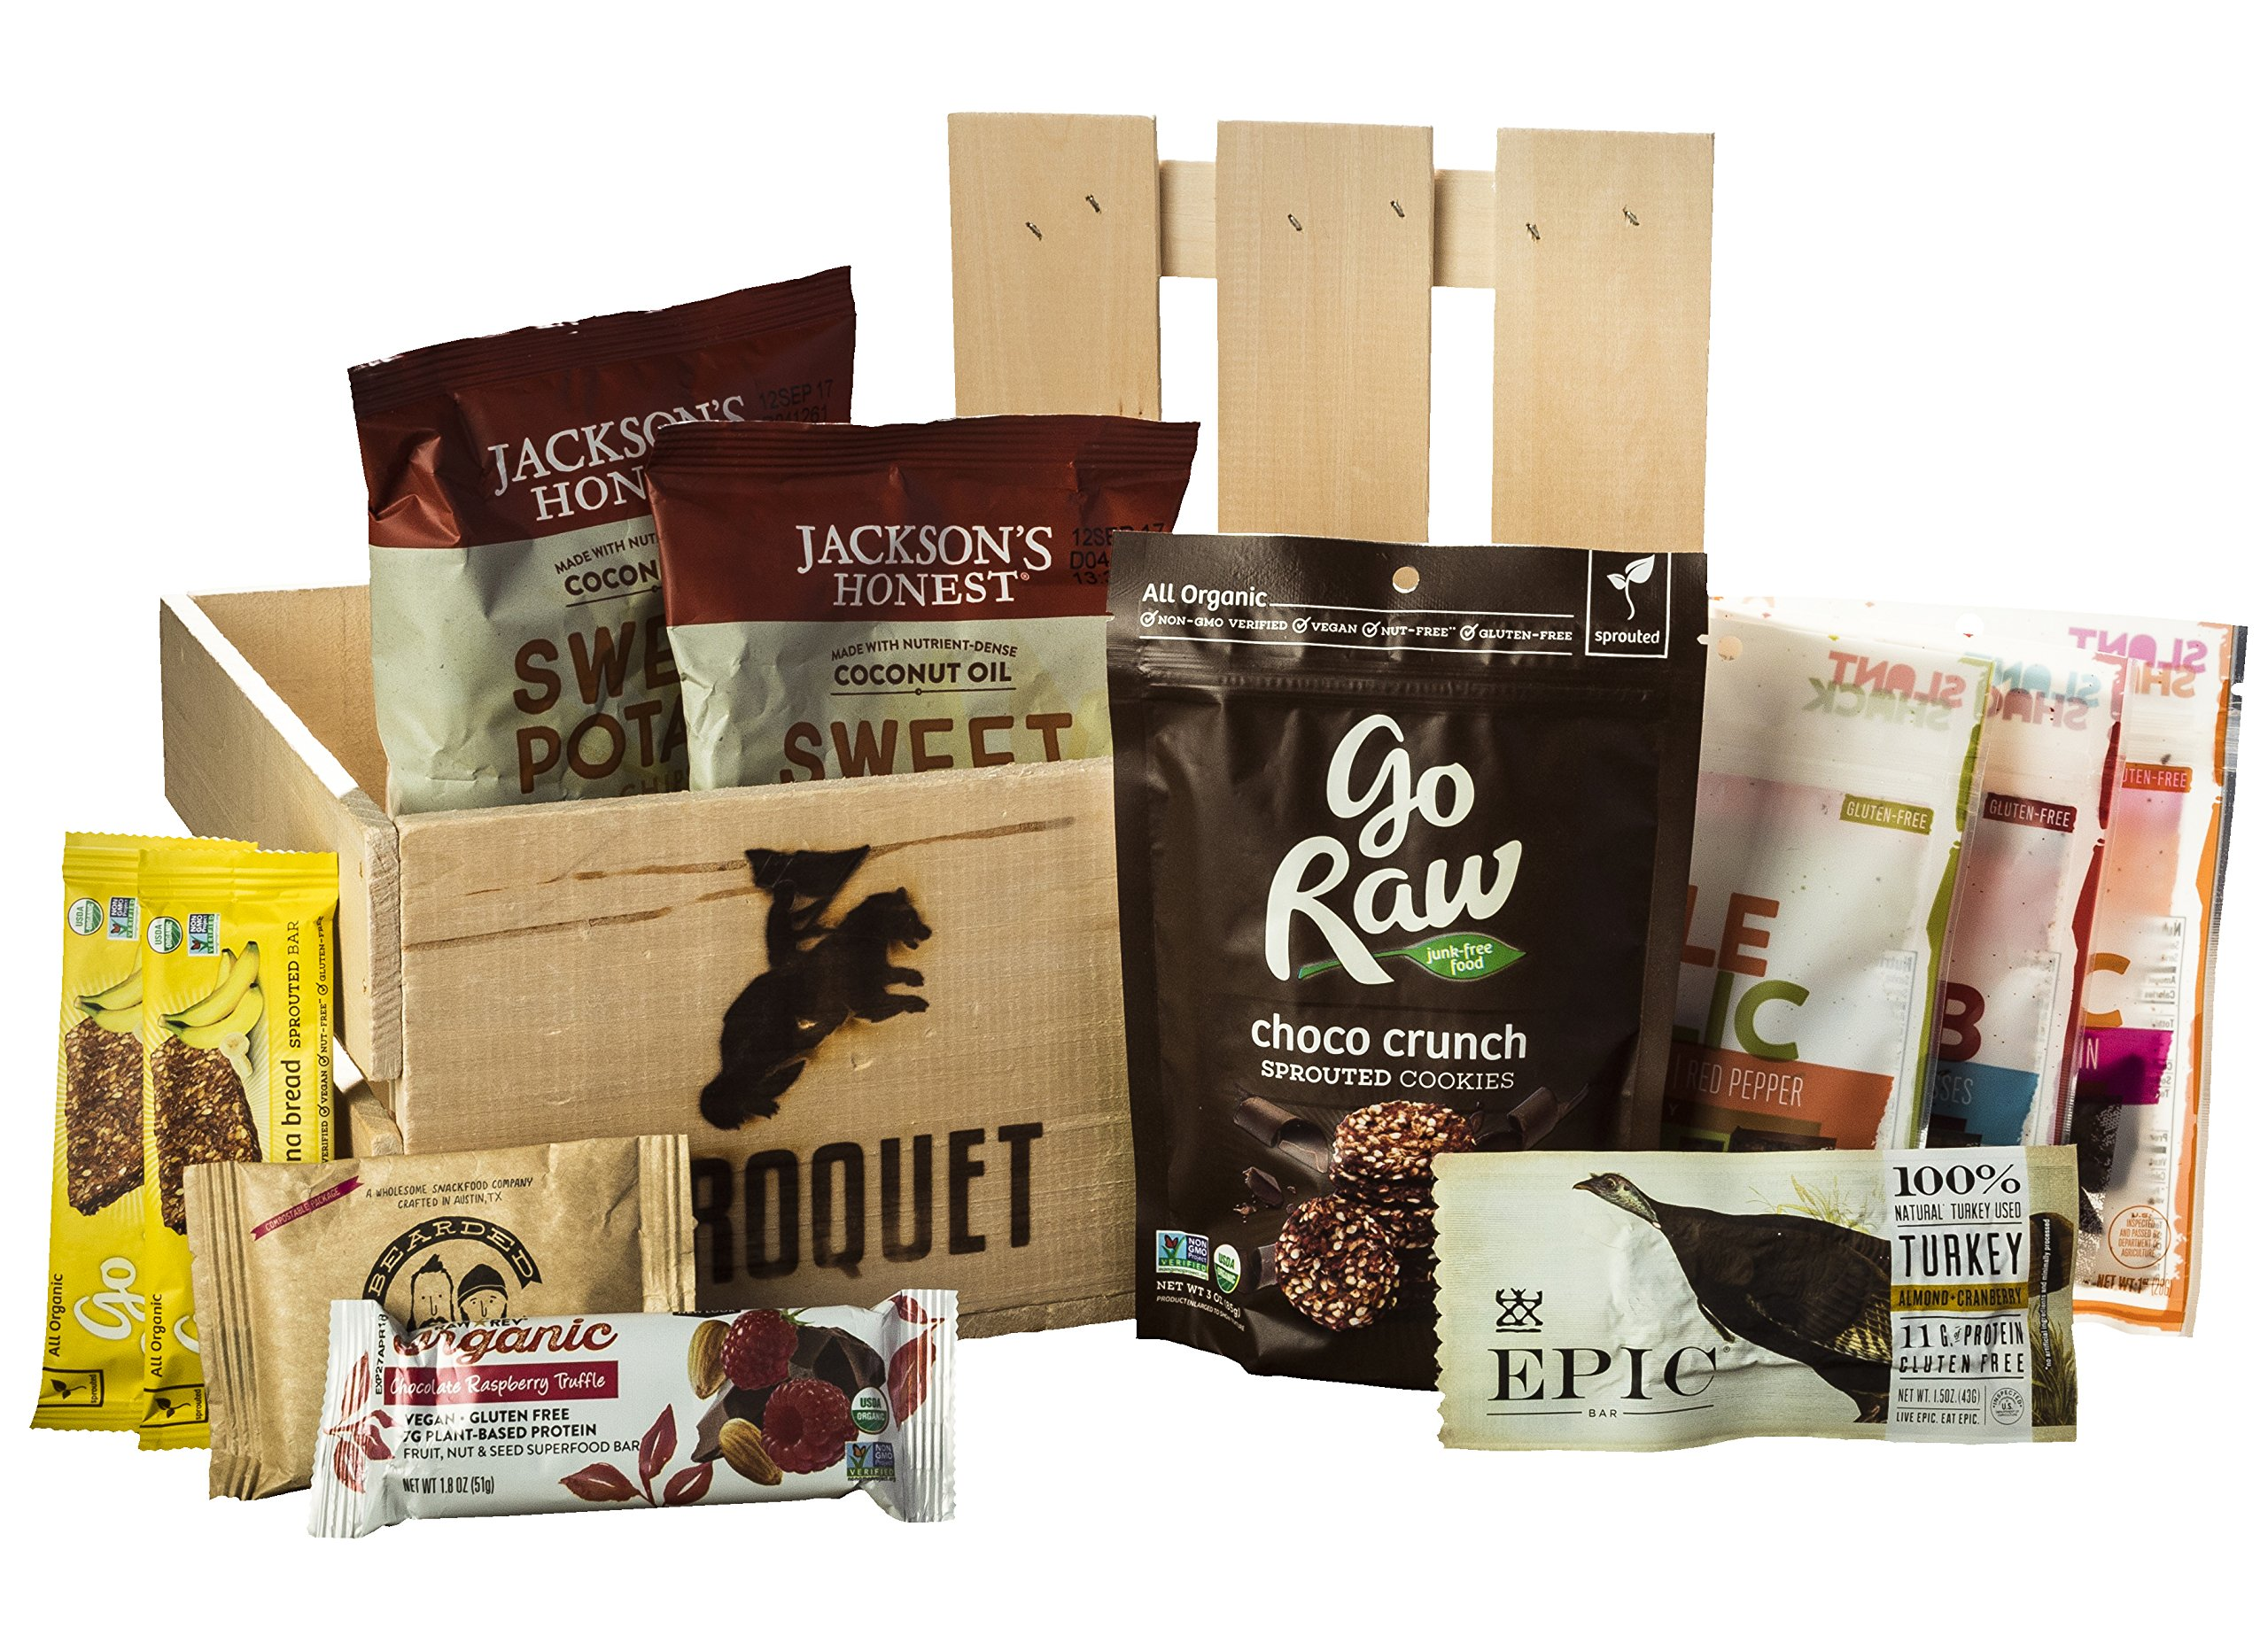 Paleo Snack Gift Crate - 9 Healthy Paleo Snacks - Comes in a Wooden Gift Crate - Great Gift For Men - Paleo Friendly - Snack Gift - Paleo Diet